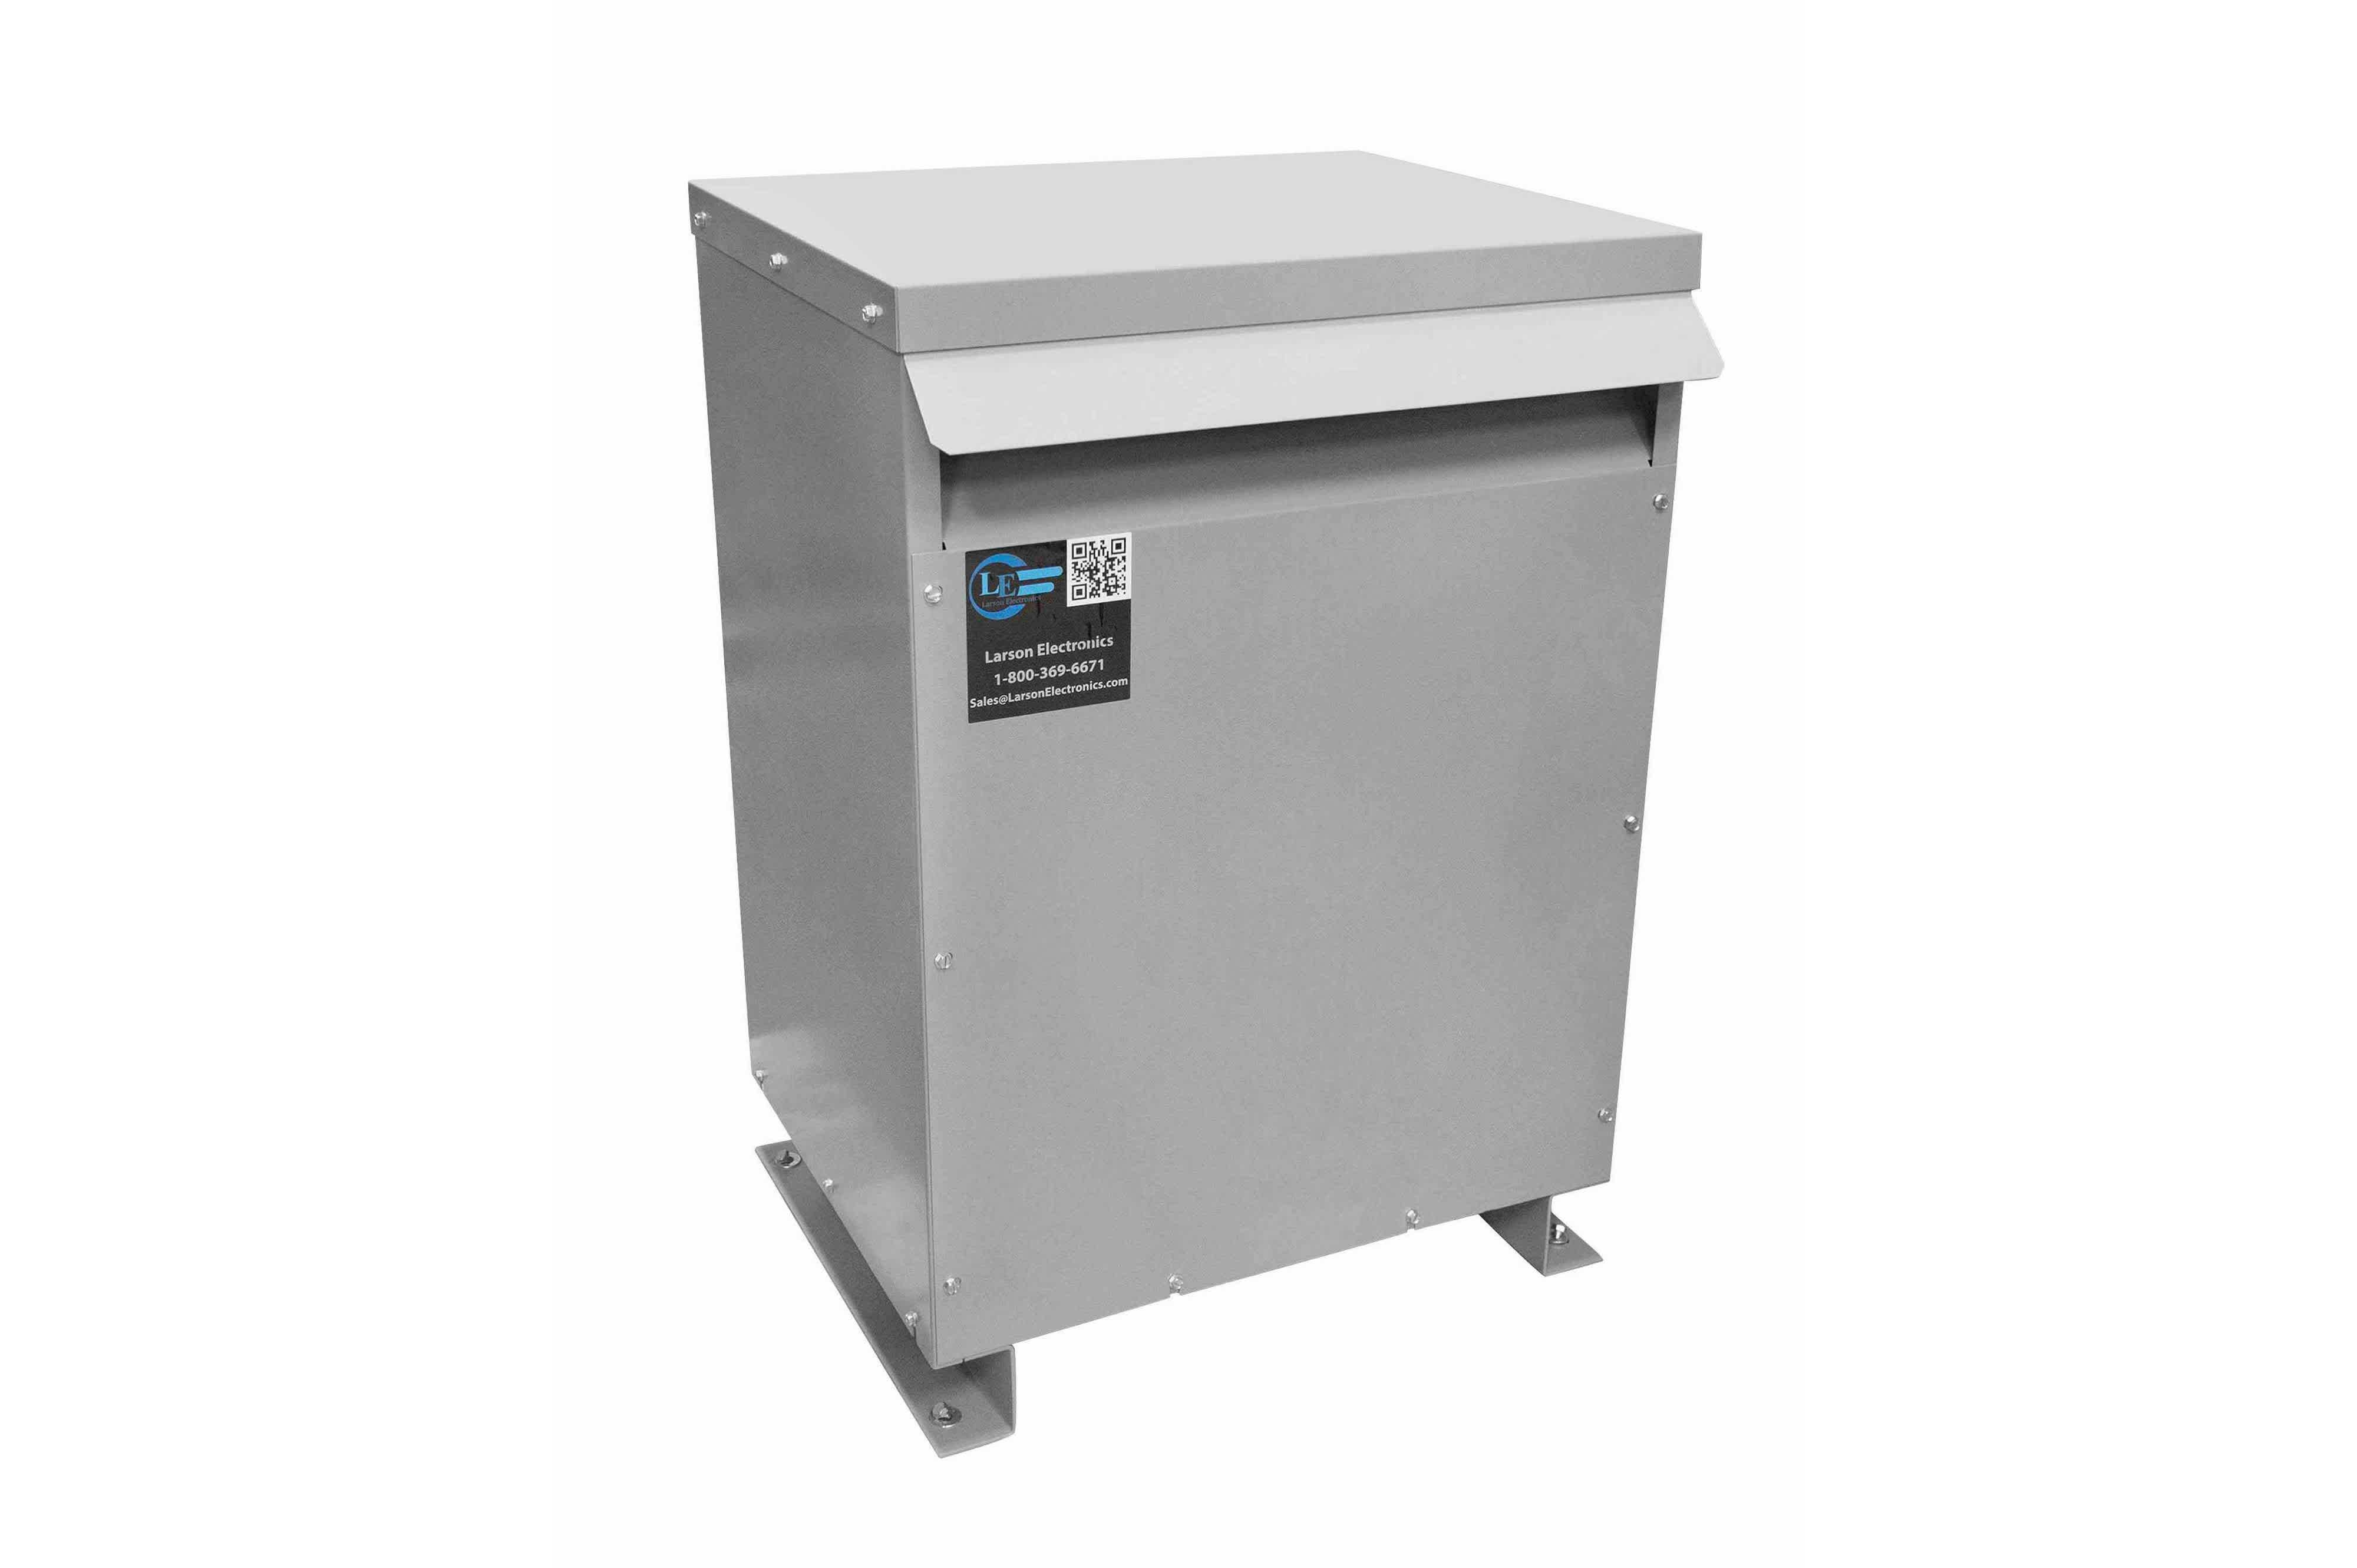 500 kVA 3PH Isolation Transformer, 230V Delta Primary, 208V Delta Secondary, N3R, Ventilated, 60 Hz